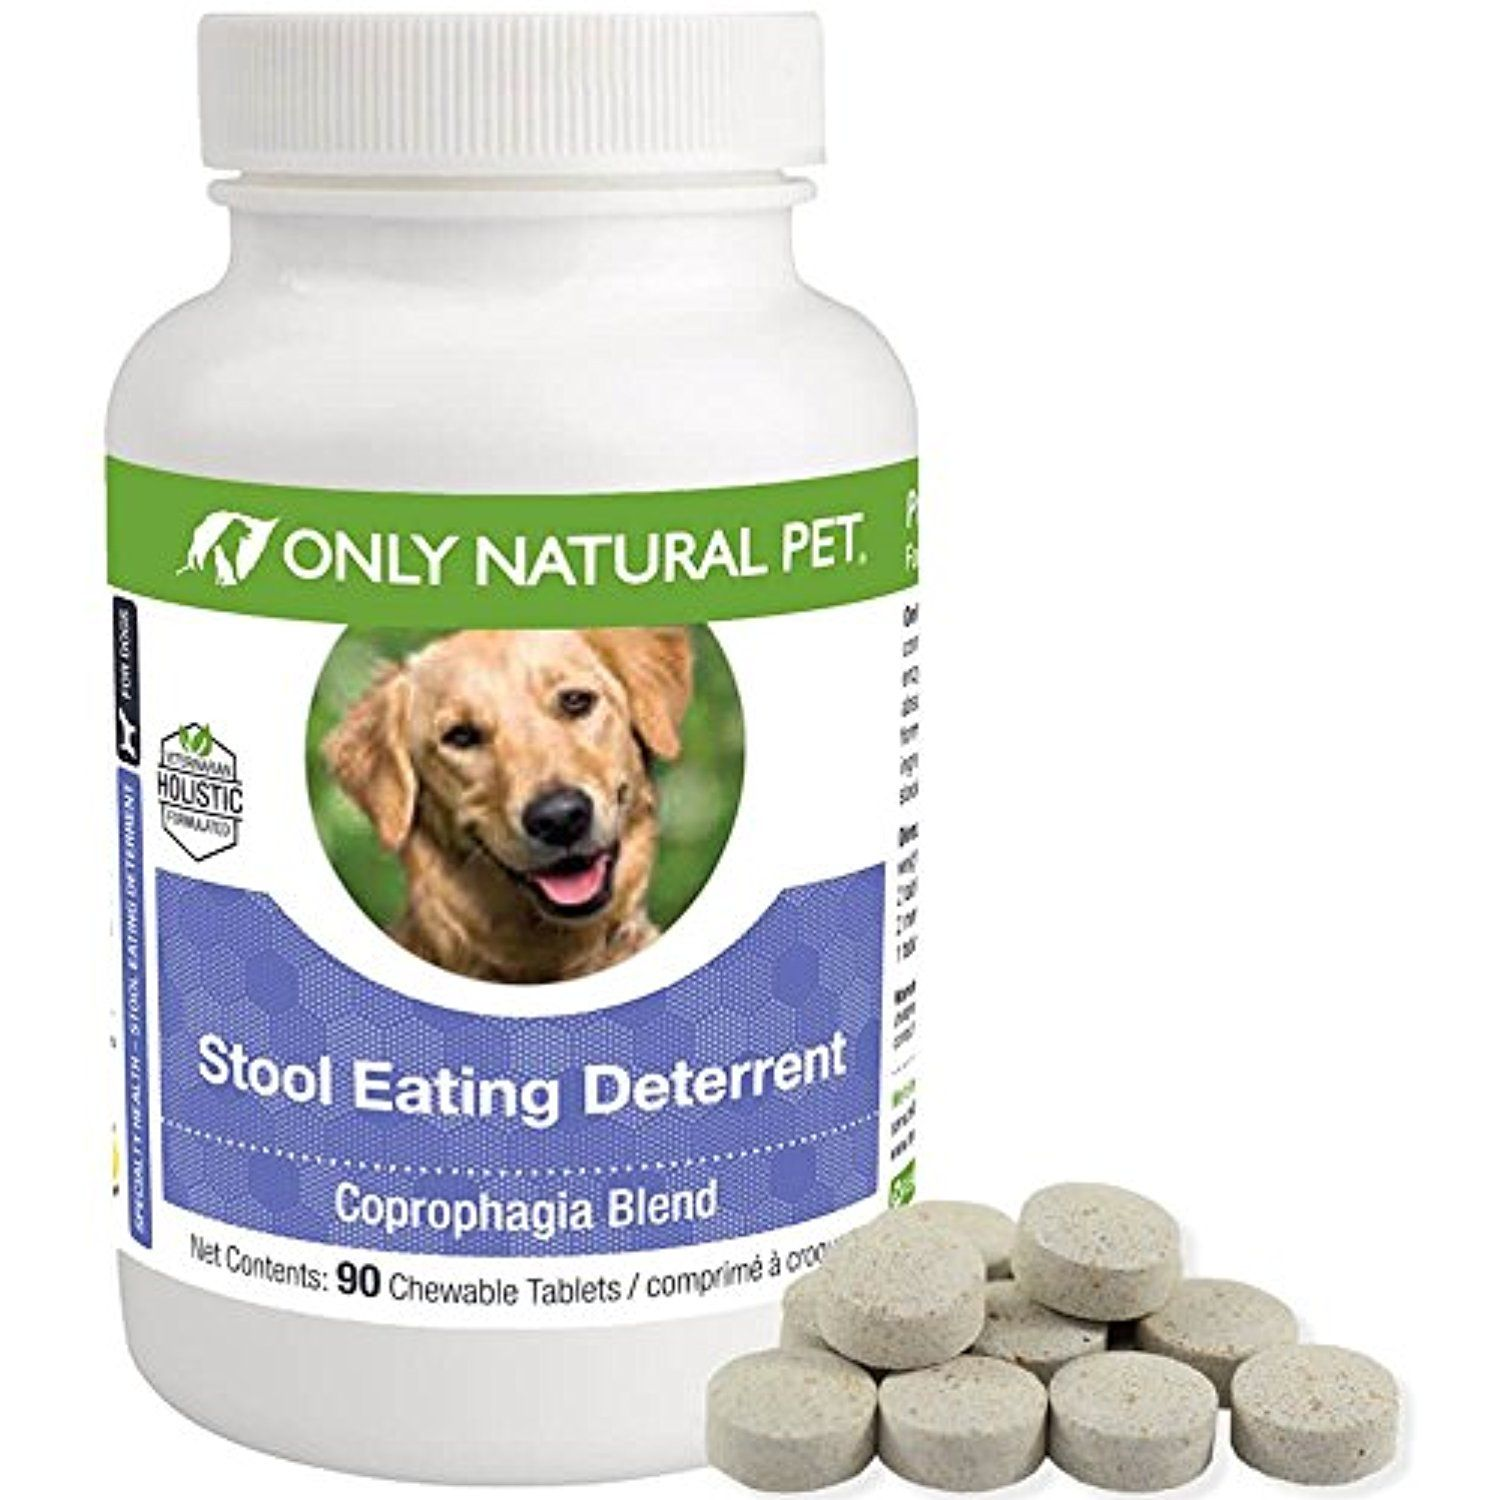 Only natural pet stool eating deterrent for dogs and